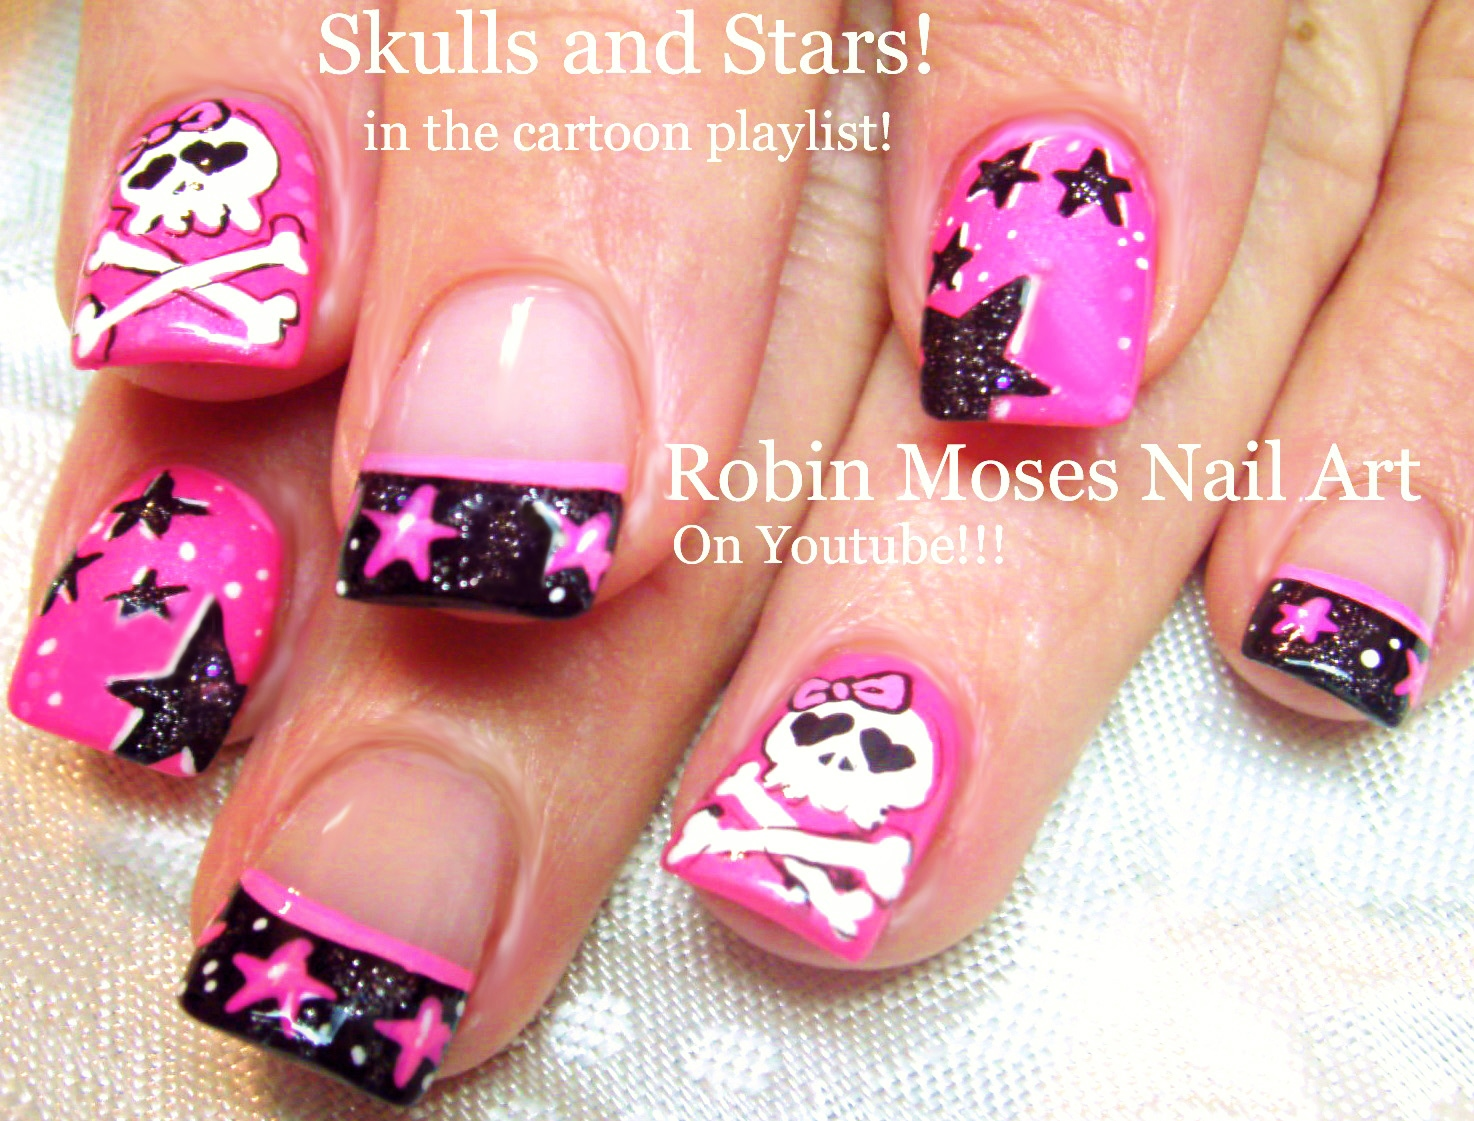 Robin moses nail art lots of little trendy skull nail art design lots of little trendy skull nail art design ideas for summer todays nails in pink black and white prinsesfo Choice Image